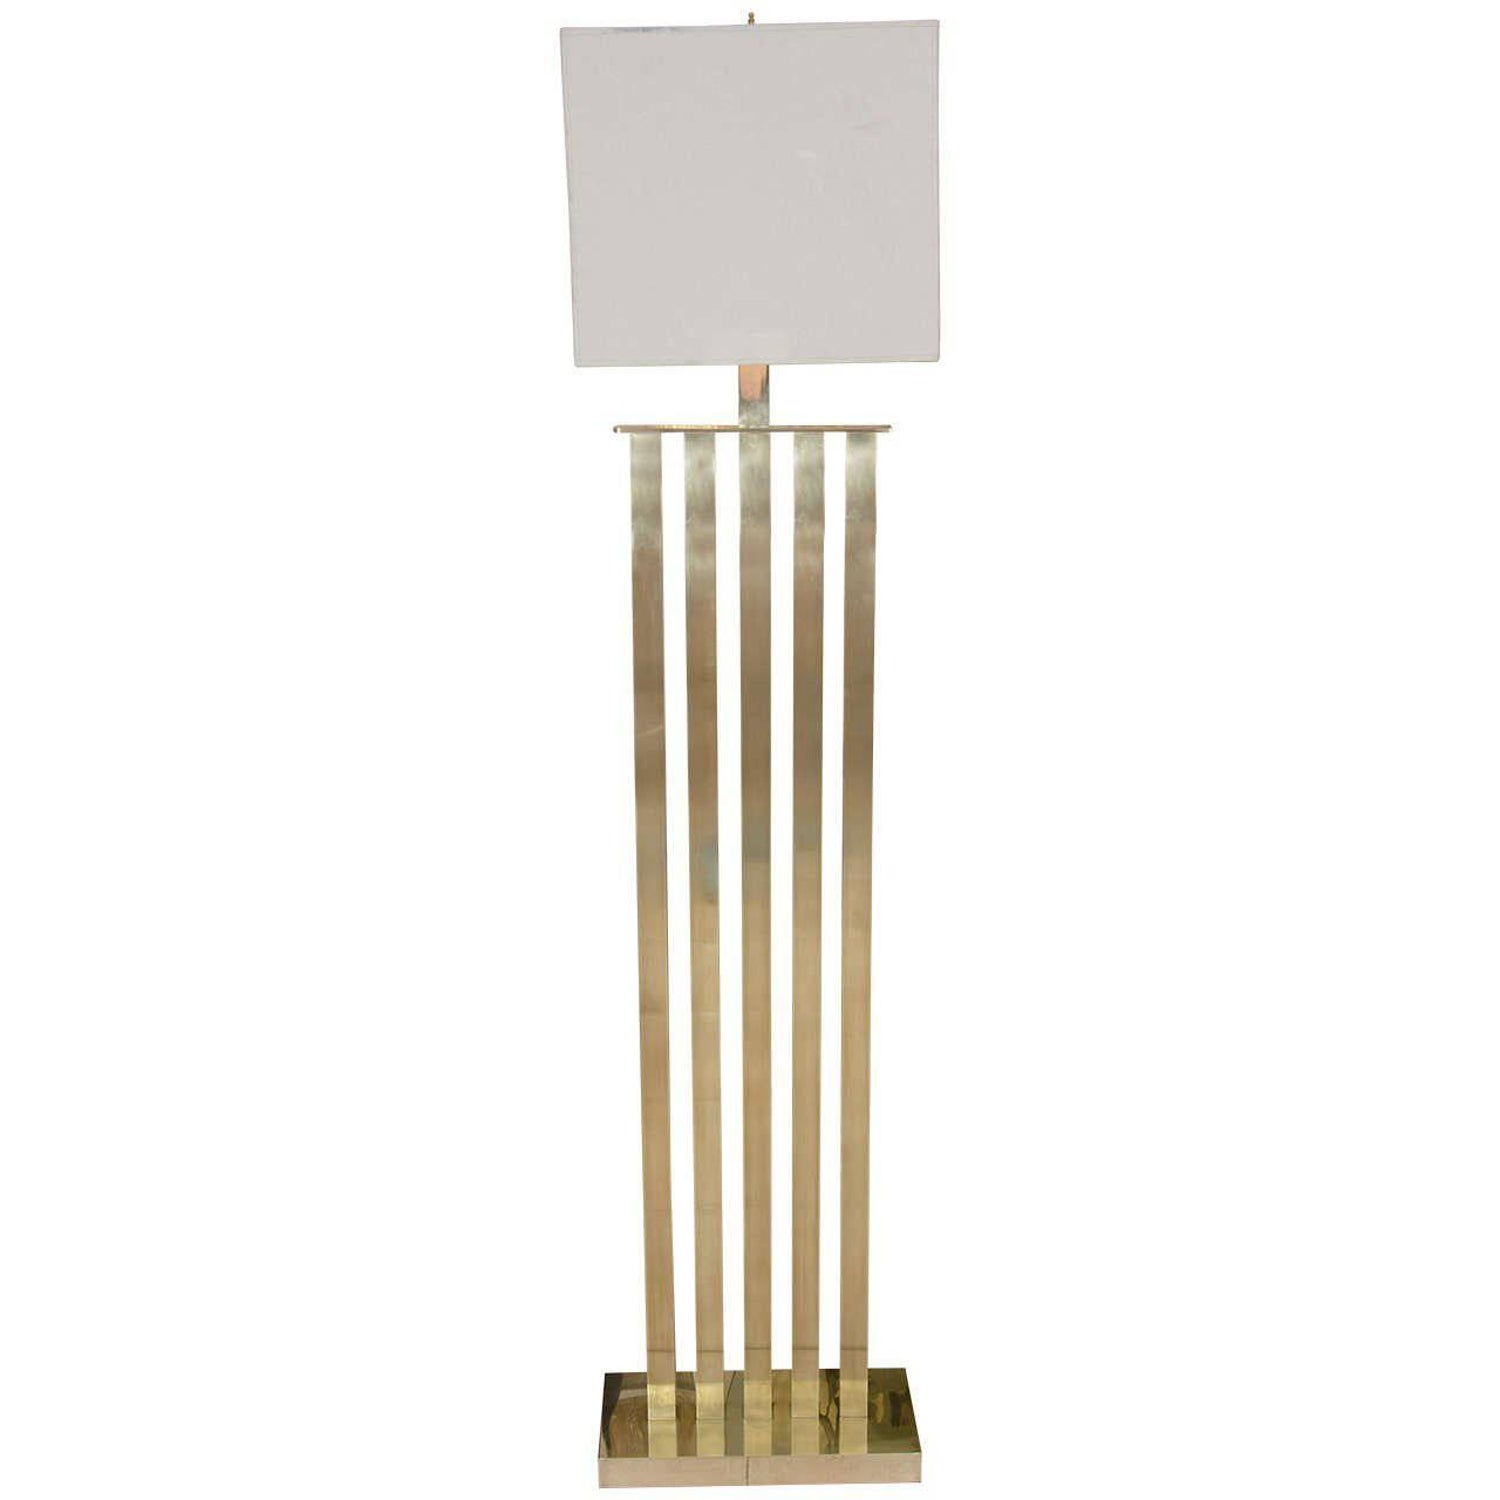 Mermaid masthead standing lamp at 1stdibs rectilinear standing brass floor lamp mozeypictures Gallery